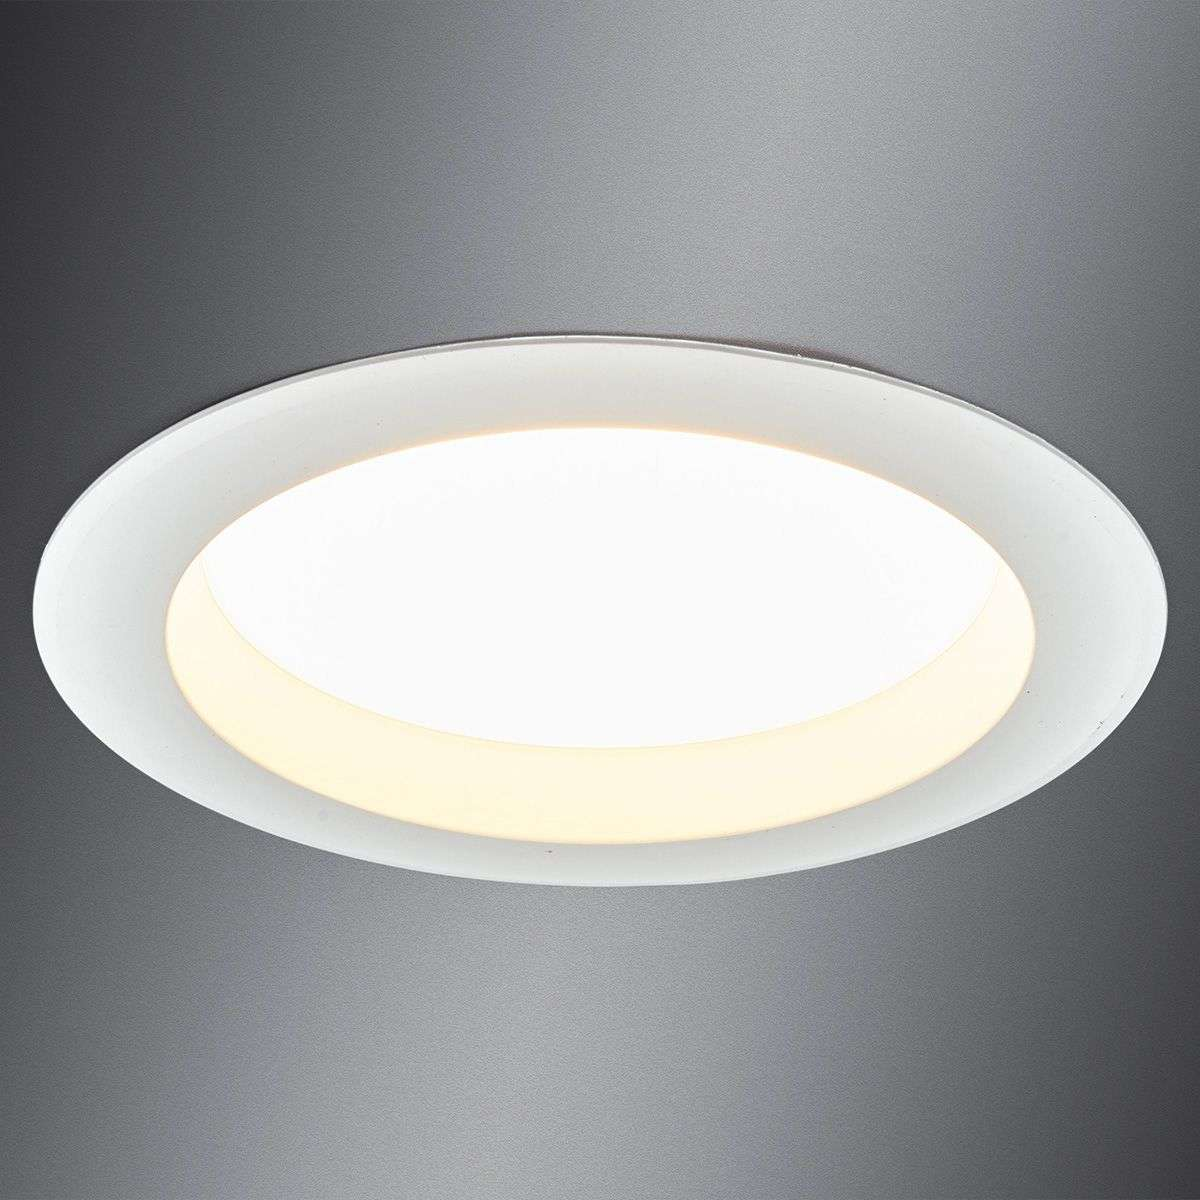 led recessed ceiling lights. LED Recessed Ceiling Light Arian, 17.4 Cm, 15 W-9978011-33 Led Lights S